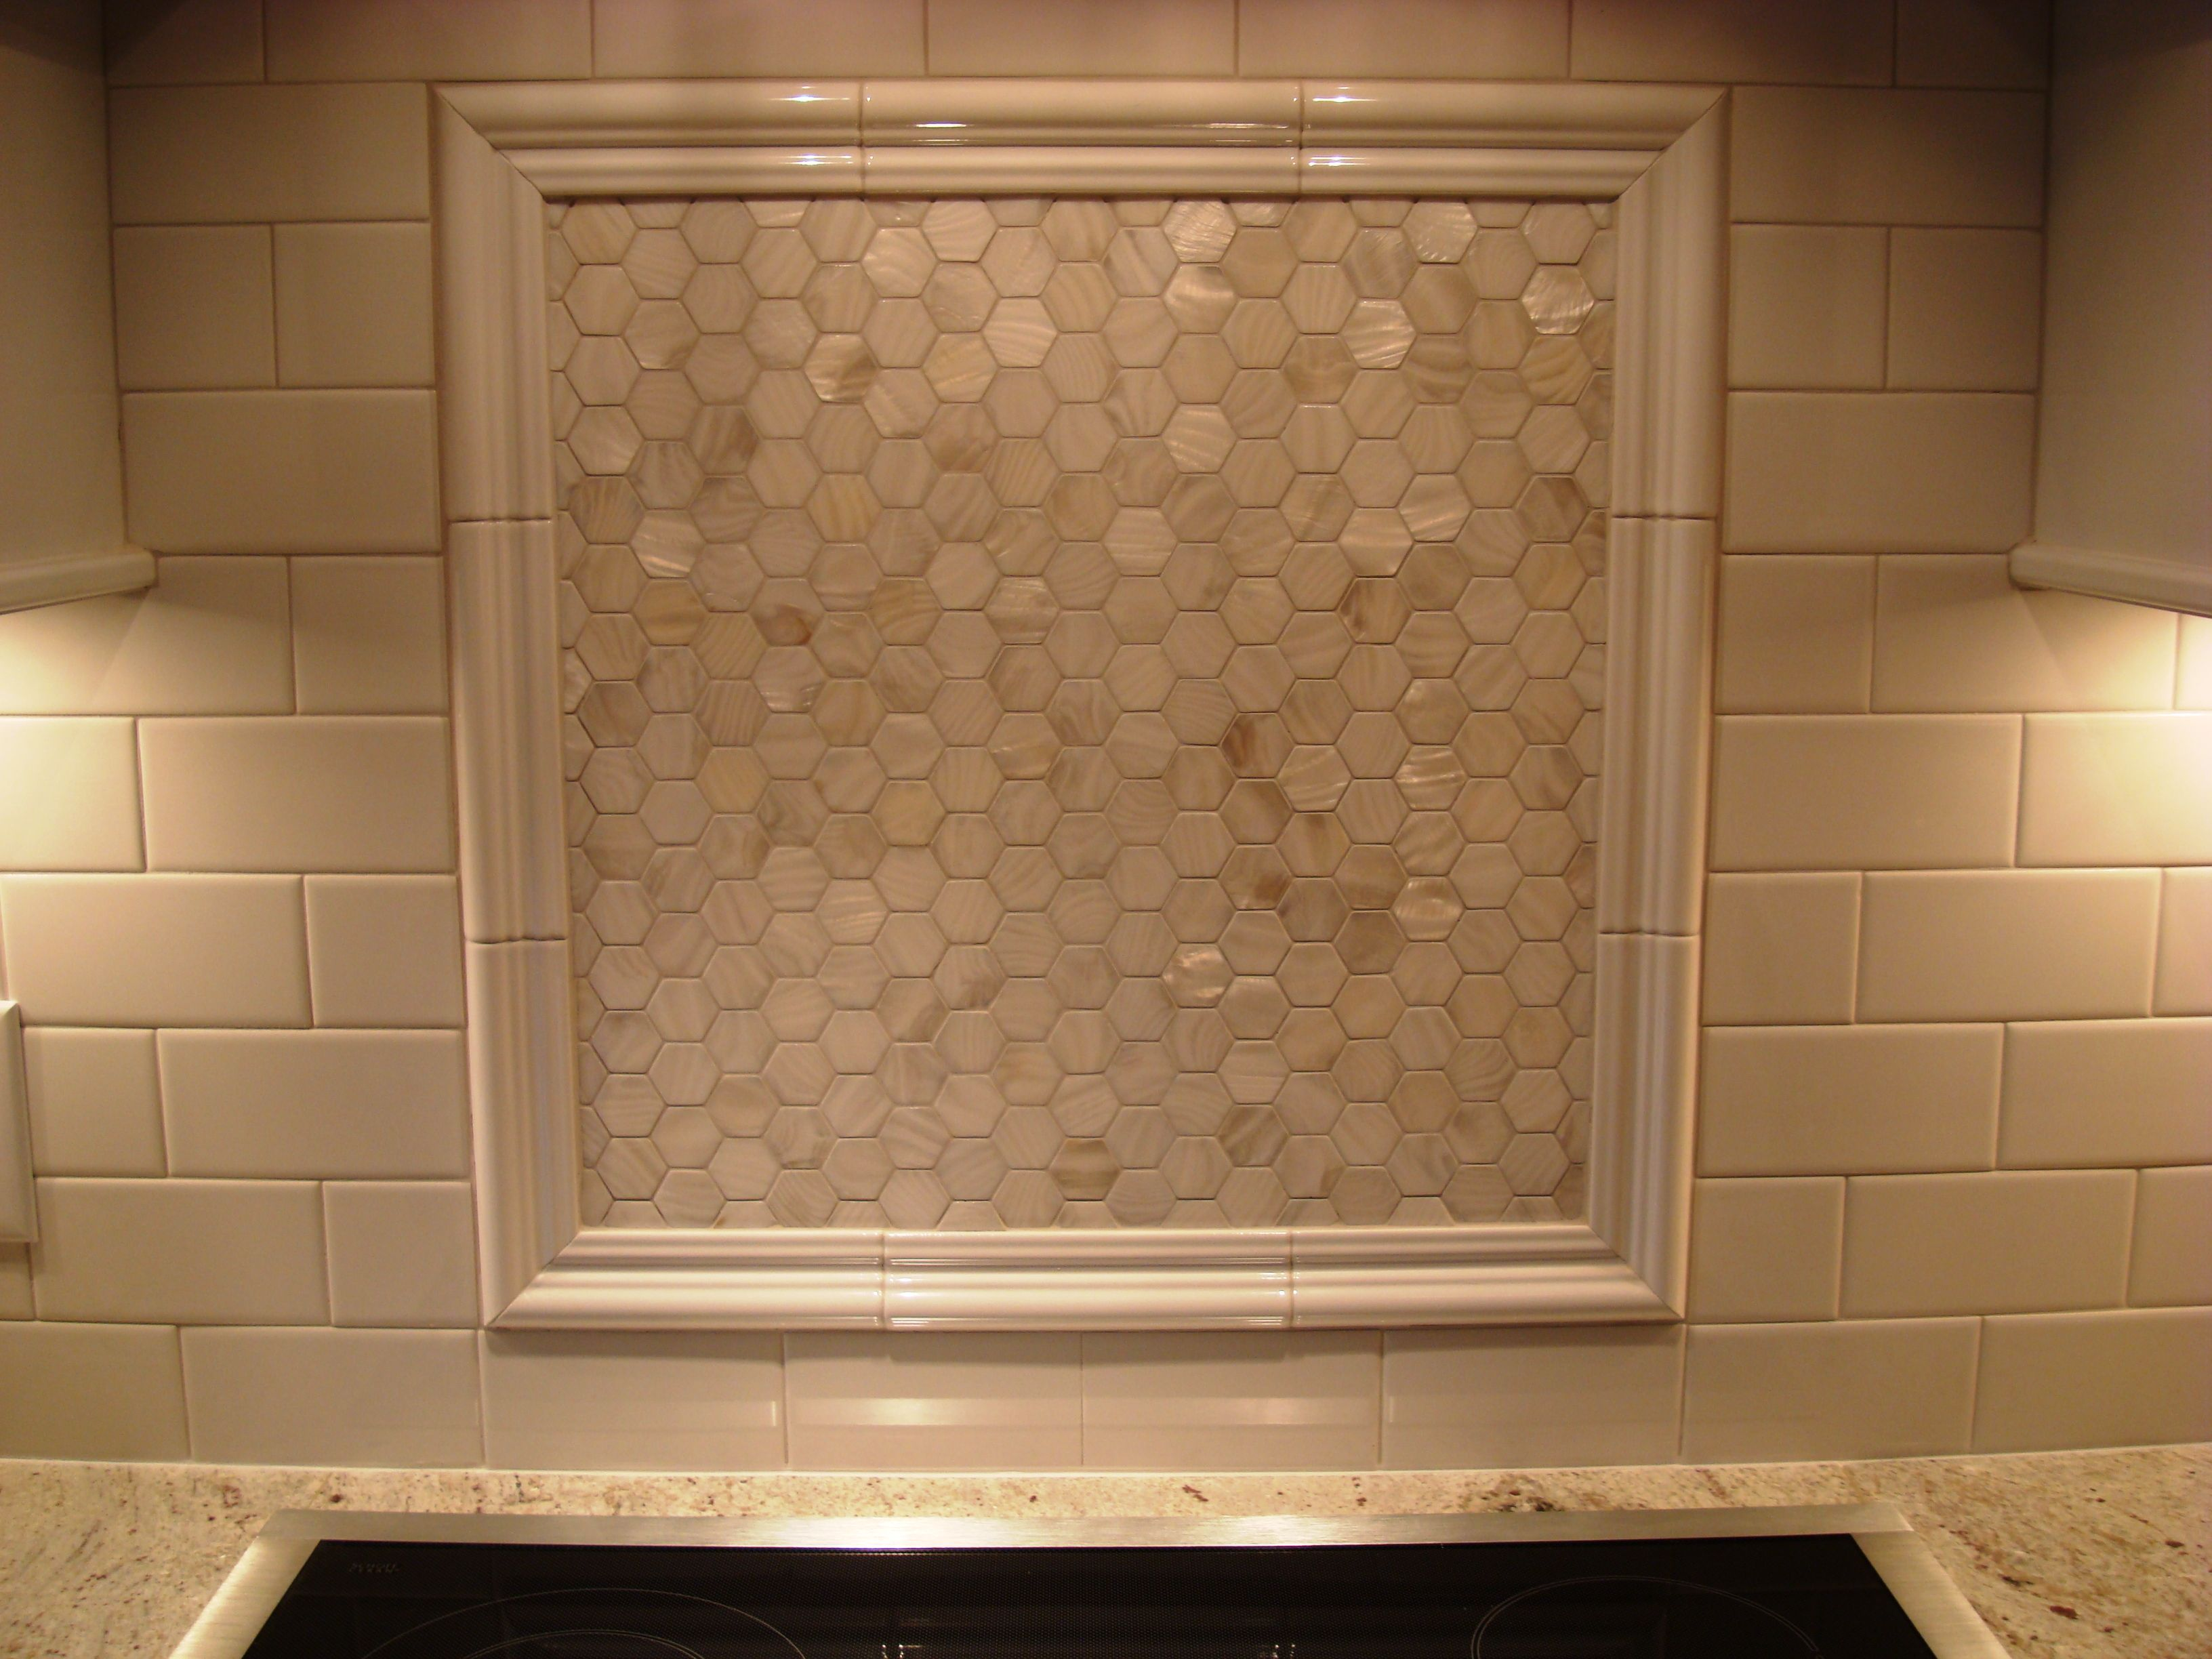 over the stove backsplash | The mother of pearl backsplash above the ...